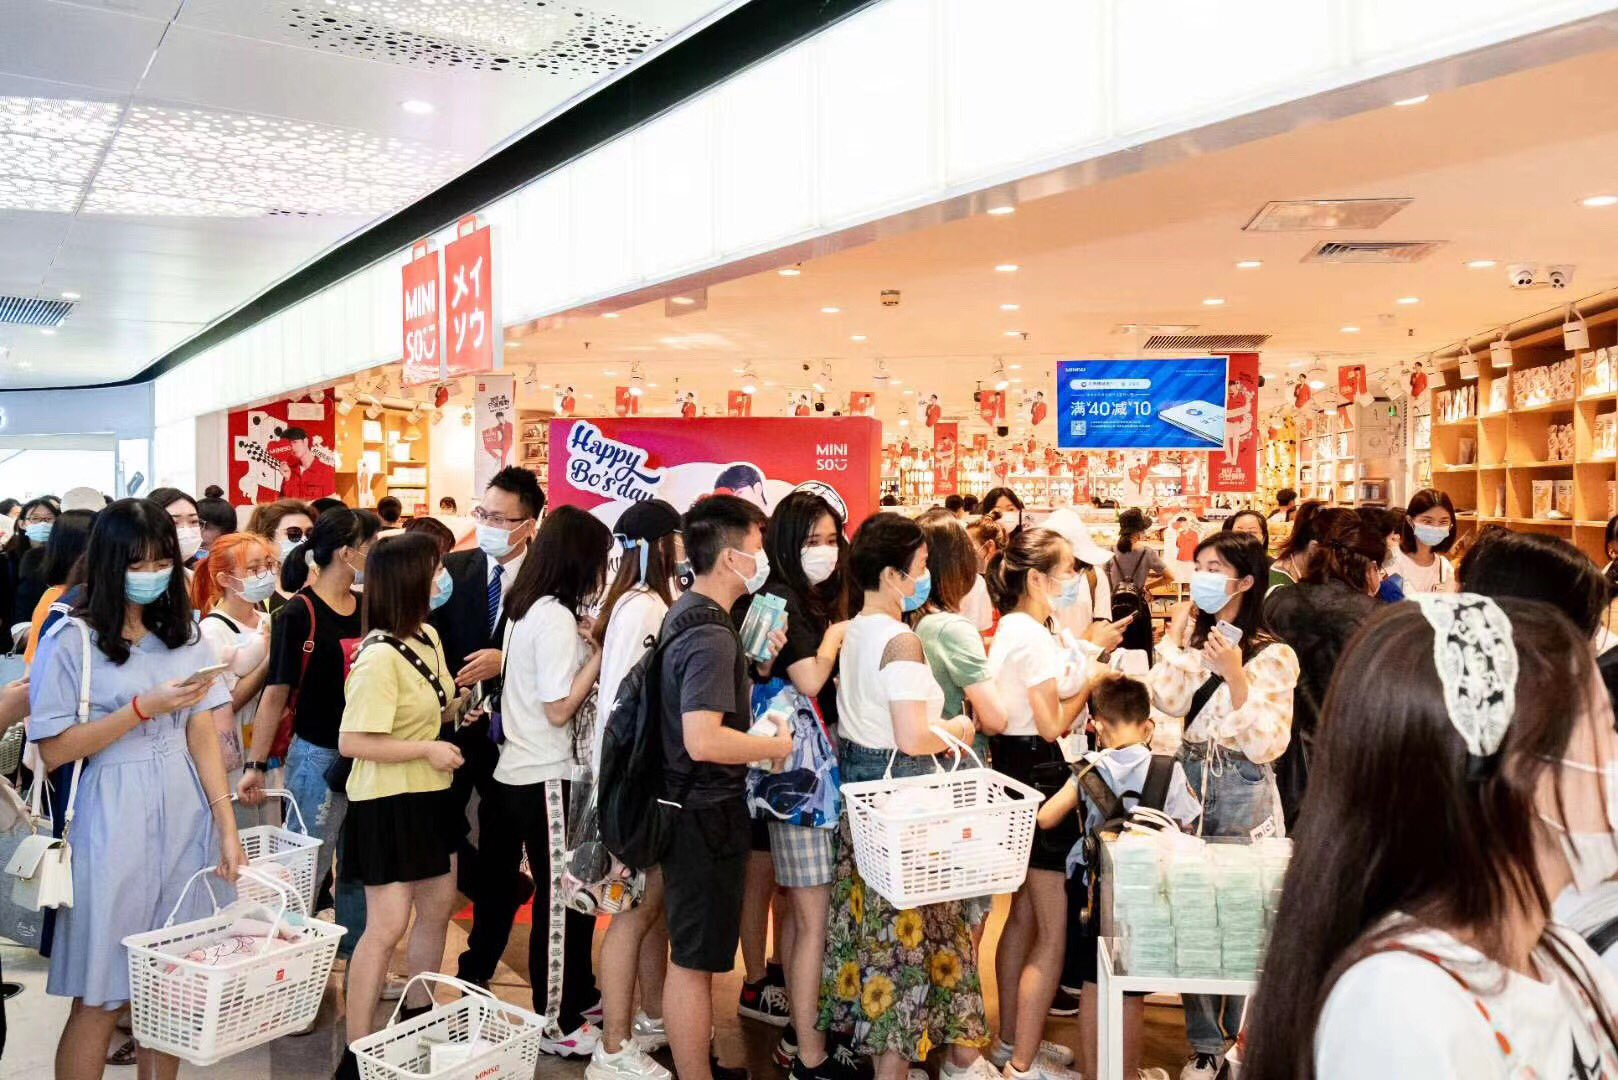 Miniso, the Japanese-looking variety store from China, sees shares jump in US IPO